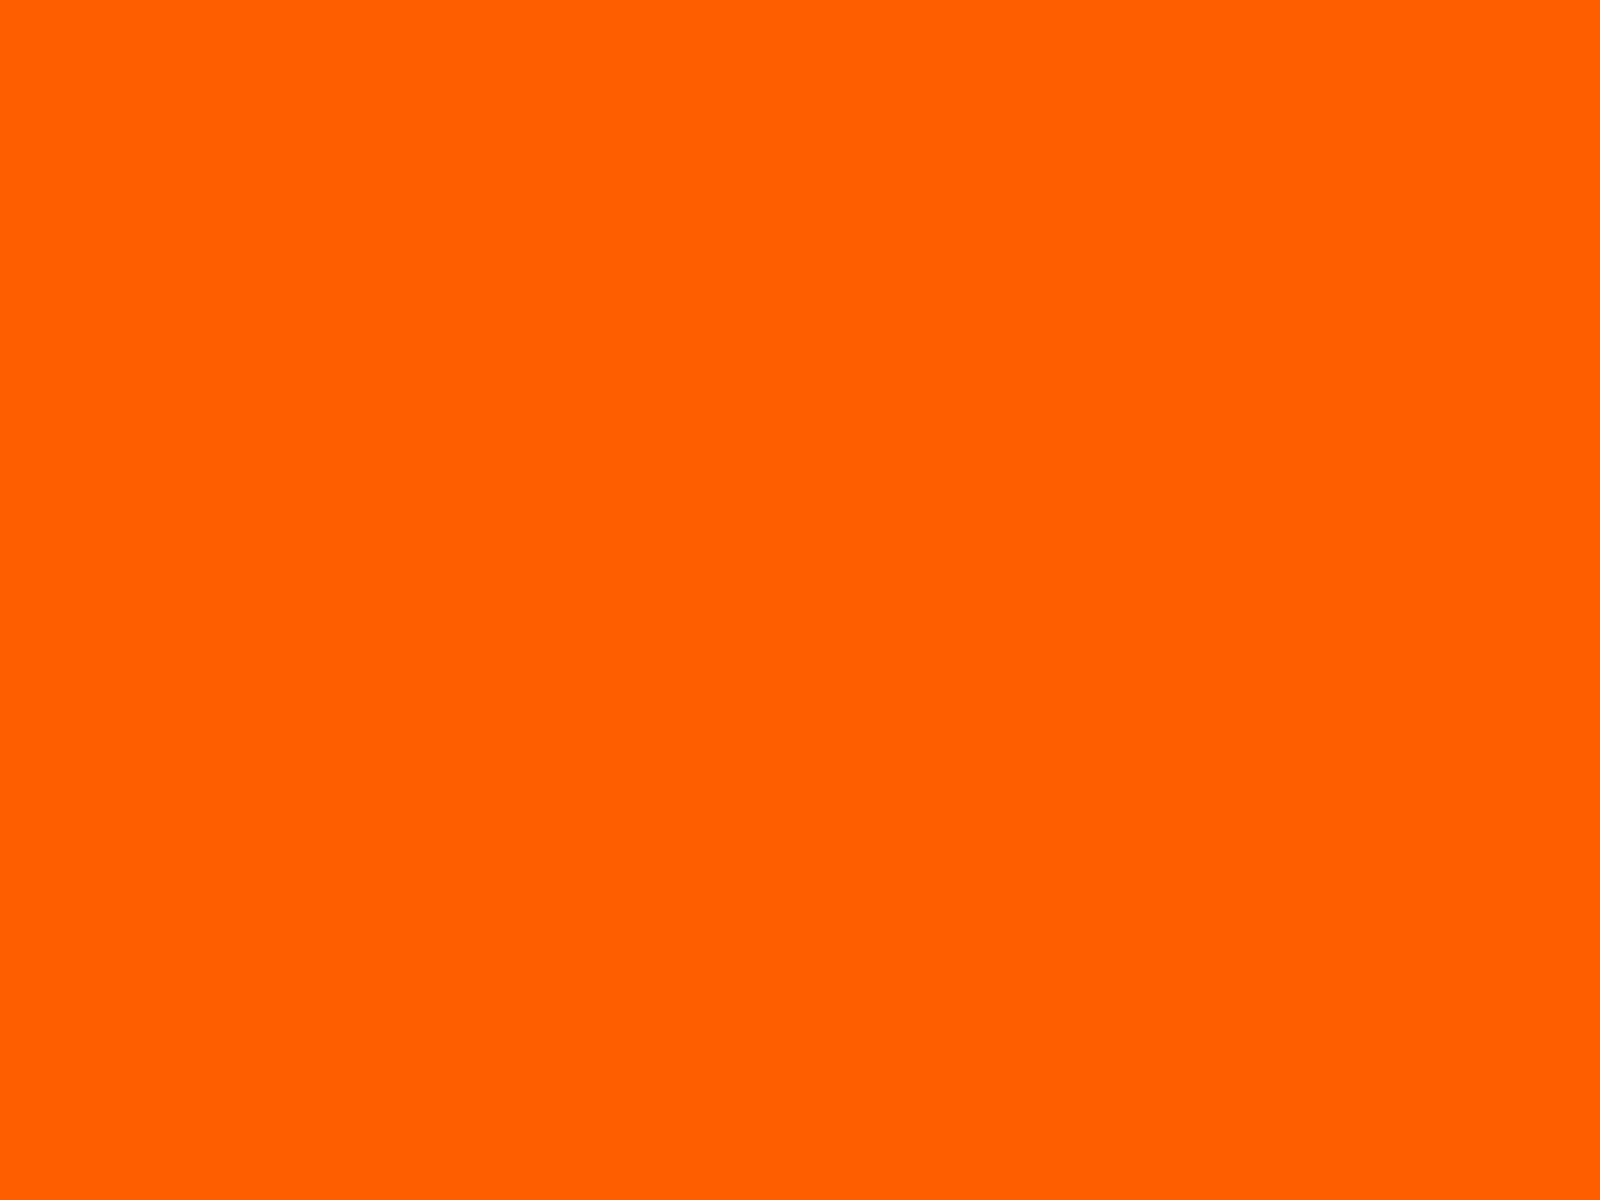 Orange color symbolism wiki fandom powered by wikia - Dreaming of the color white ...